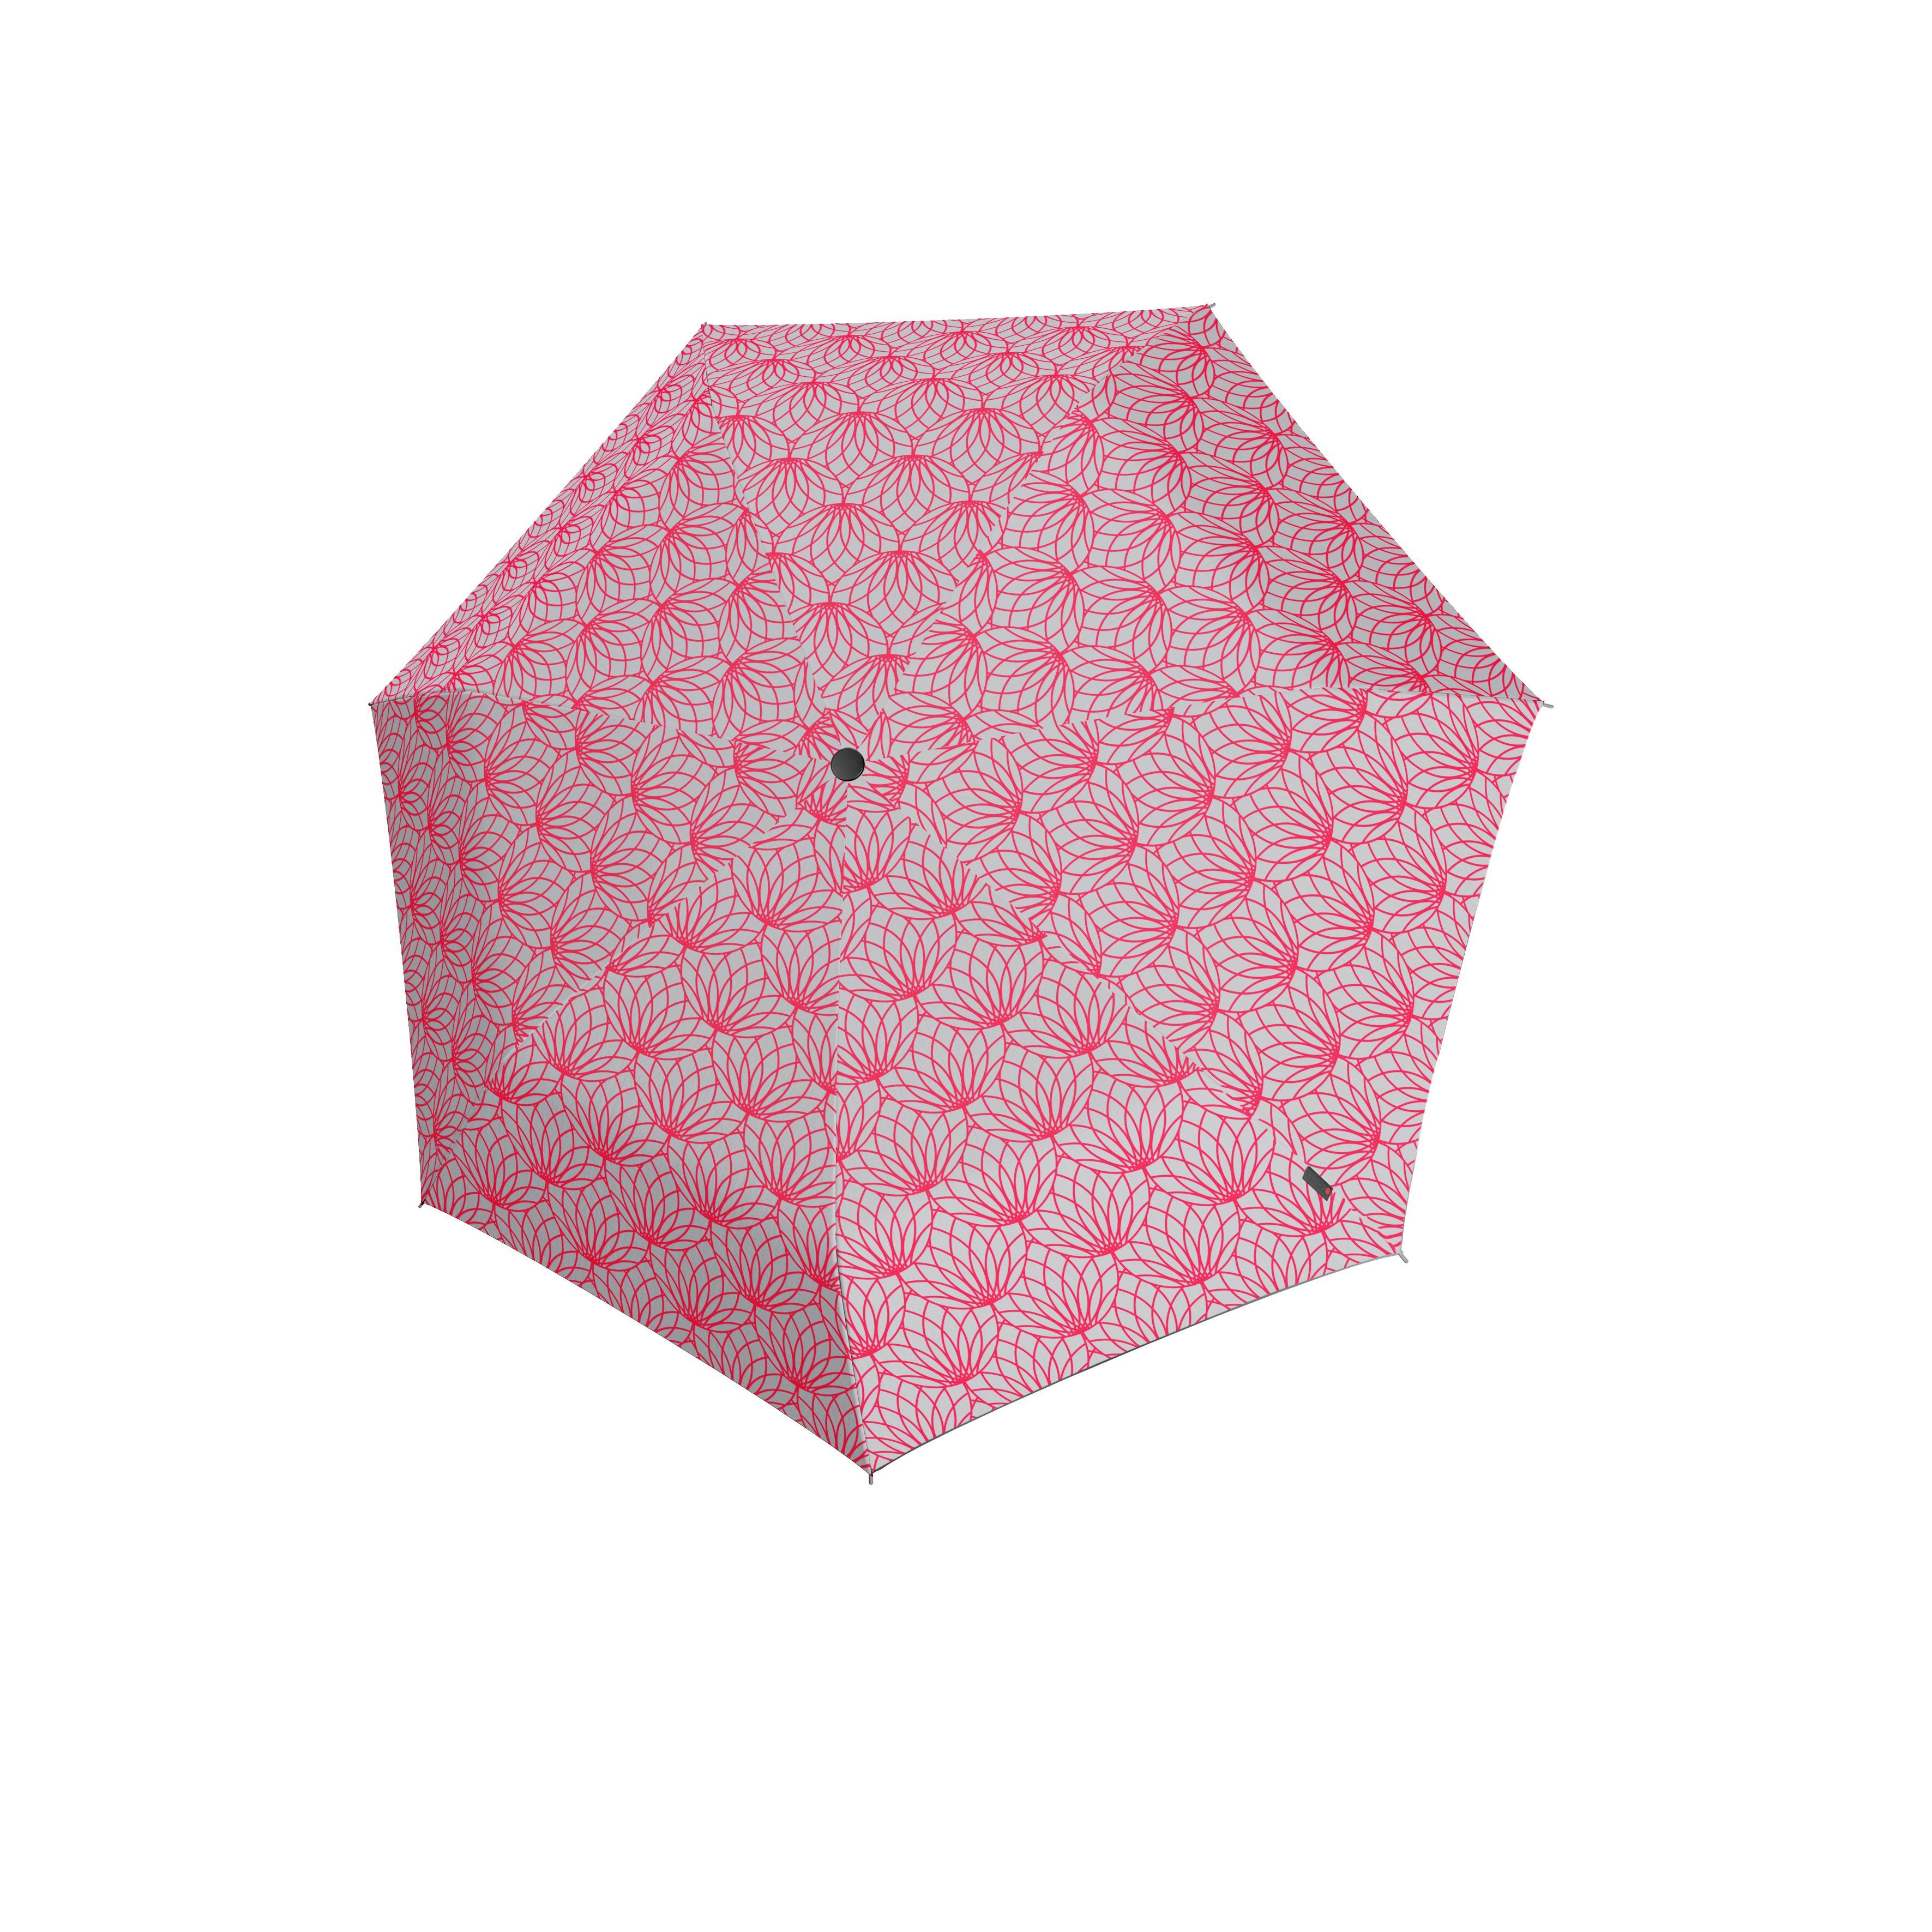 Knirps Umbrella Knirps X1 renature pink ecorepel with UV Protection